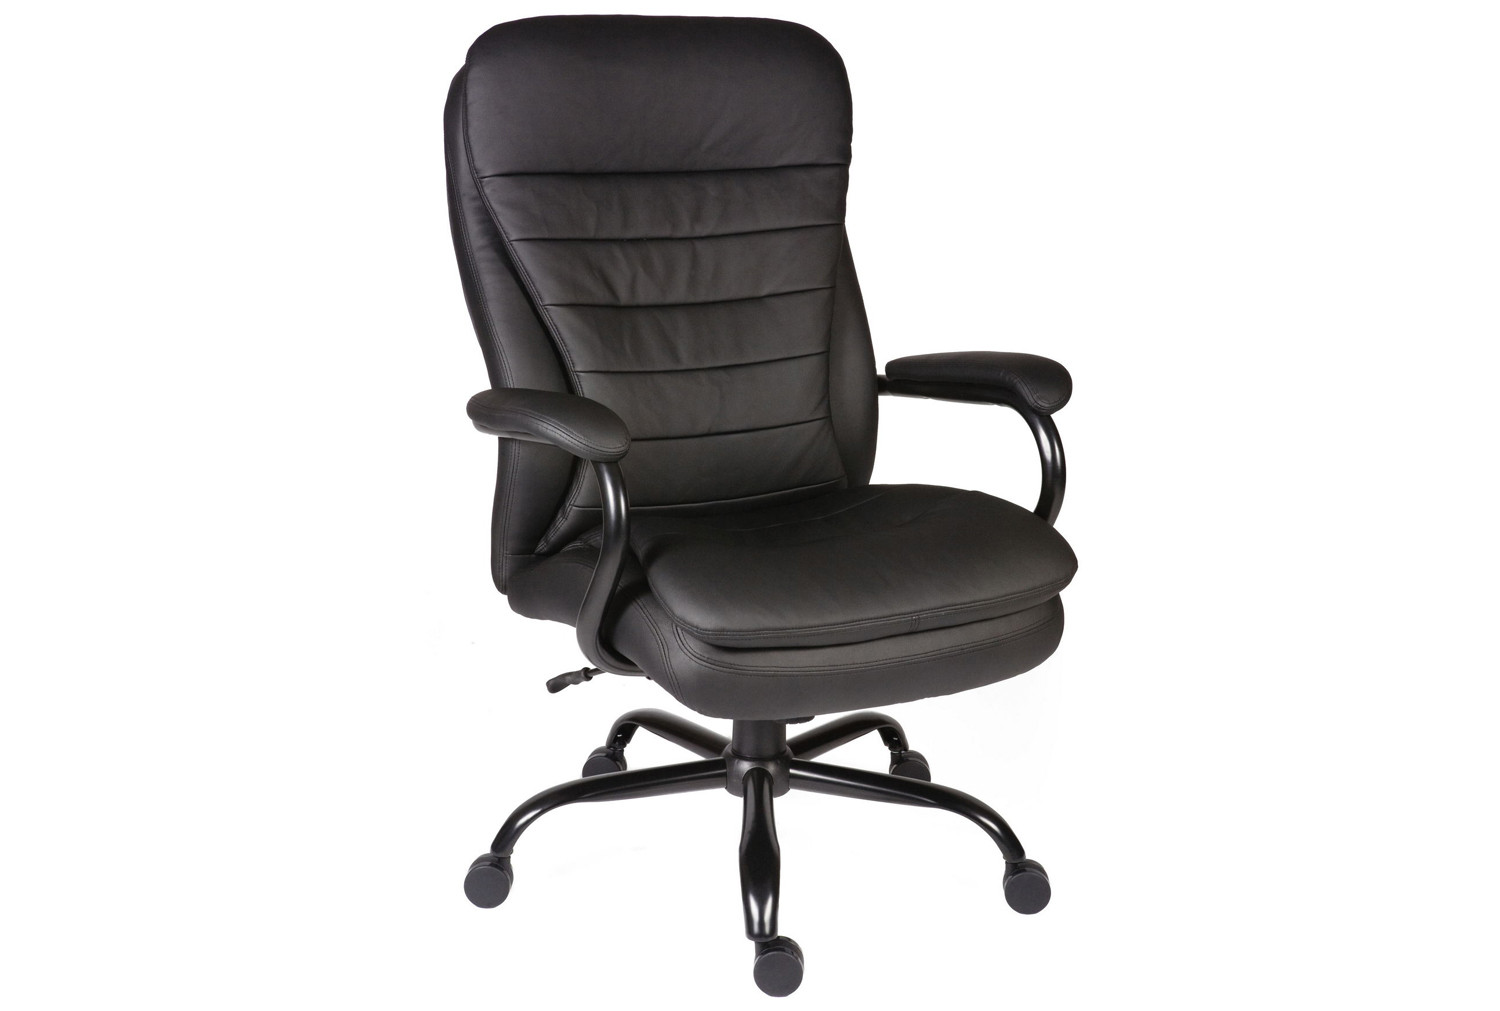 crazy office chairs. Crazy Daves - Keno Executive Leather Chair Office Supplies Chairs N